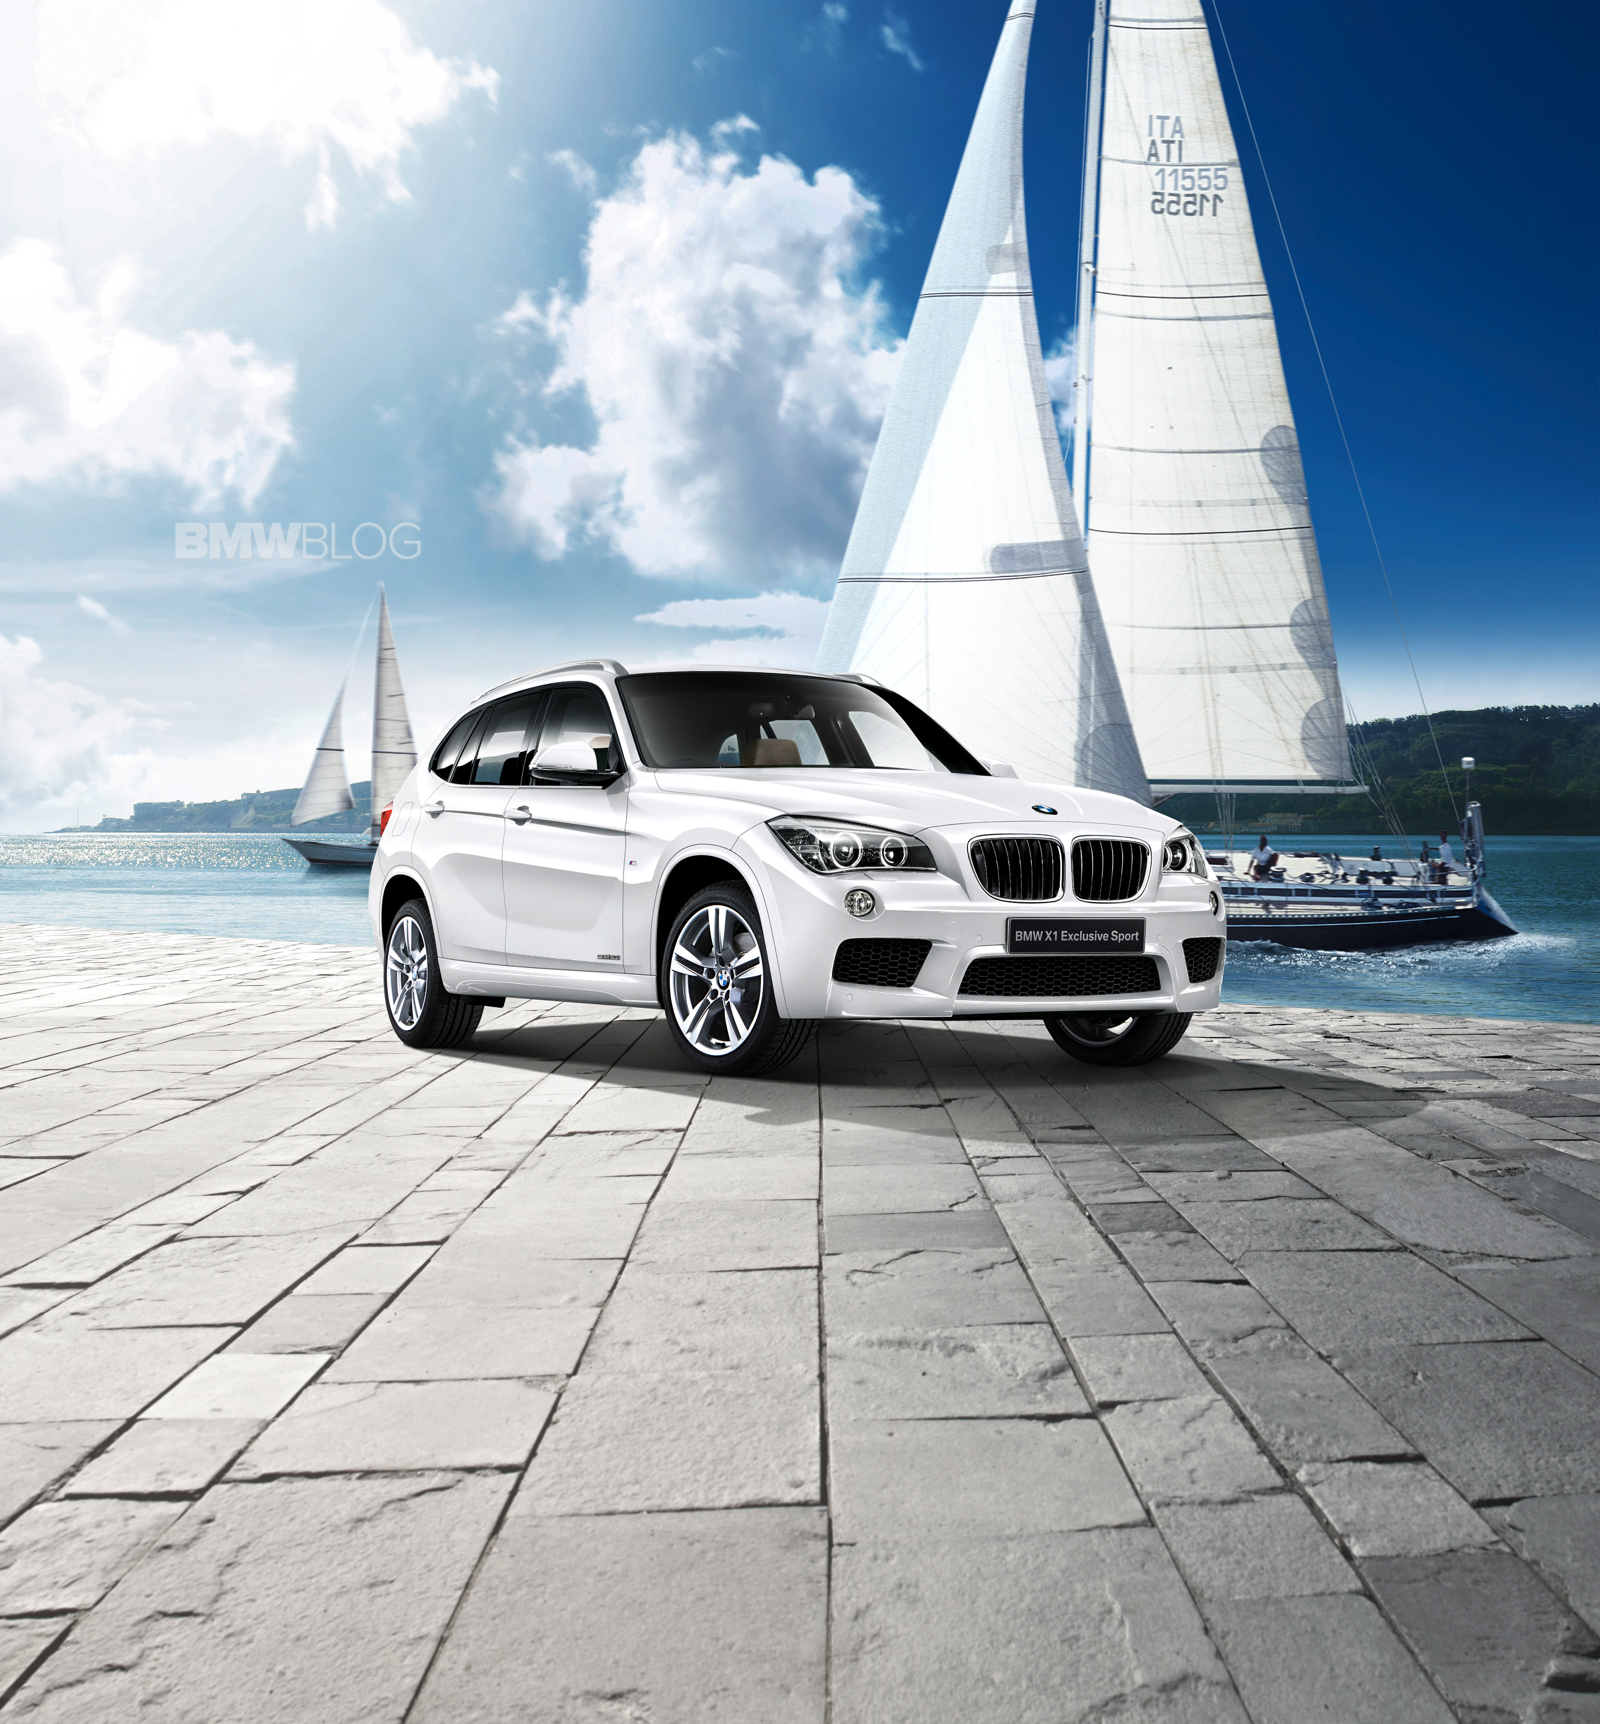 Limited Edition BMW X1 Exclusive Sport Launched 4